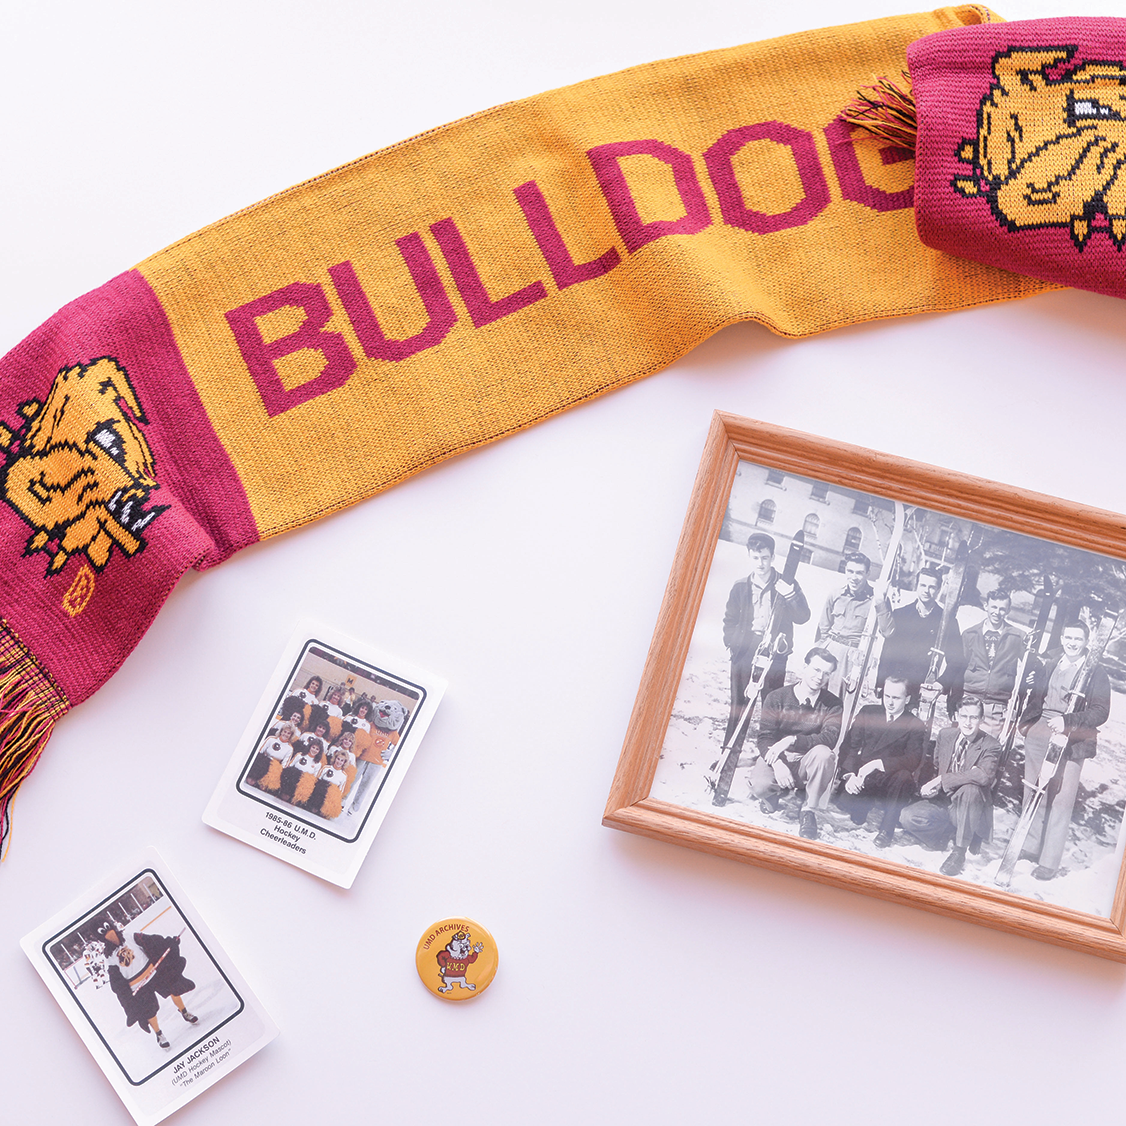 A Bulldog scarf, UMD mascot trading cards, pins, and ski team members photo.